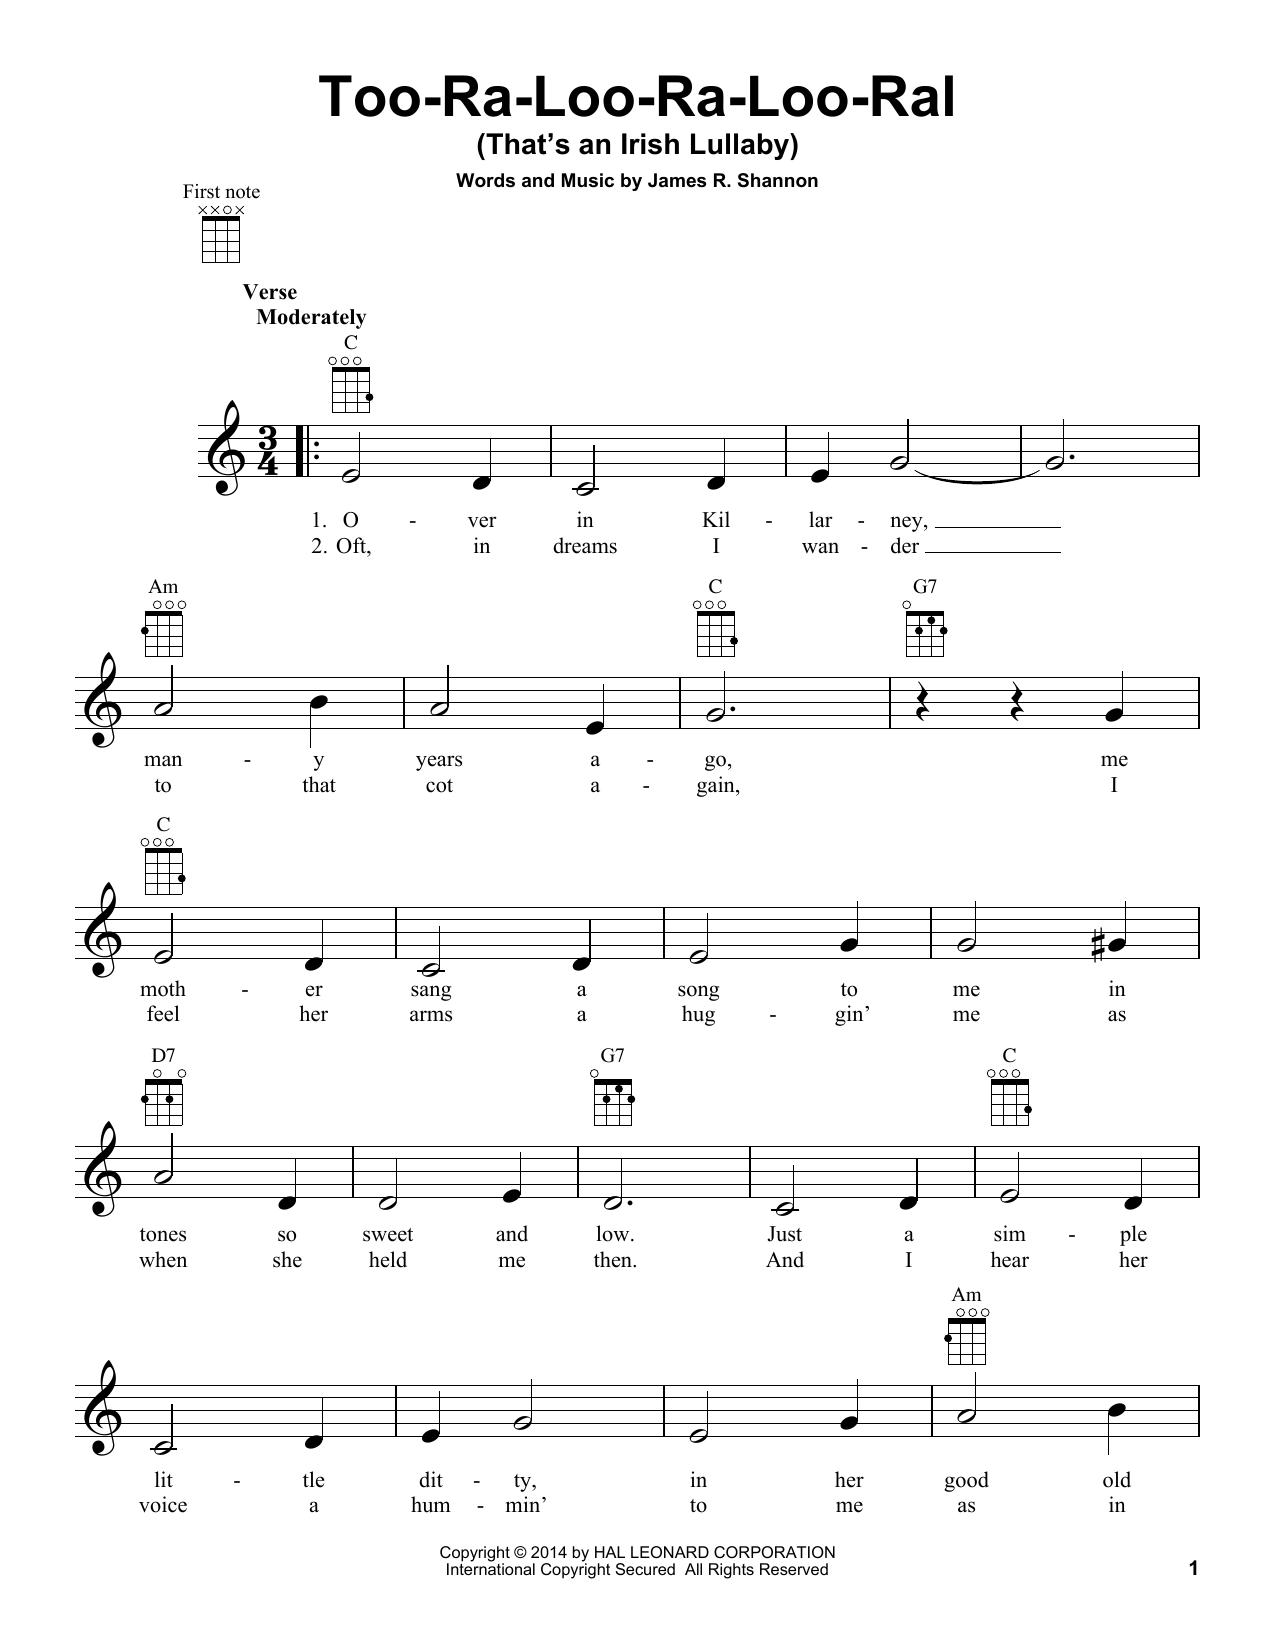 Tablature guitare Too-Ra-Loo-Ra-Loo-Ral (That's An Irish Lullaby) de James R. Shannon - Ukulele